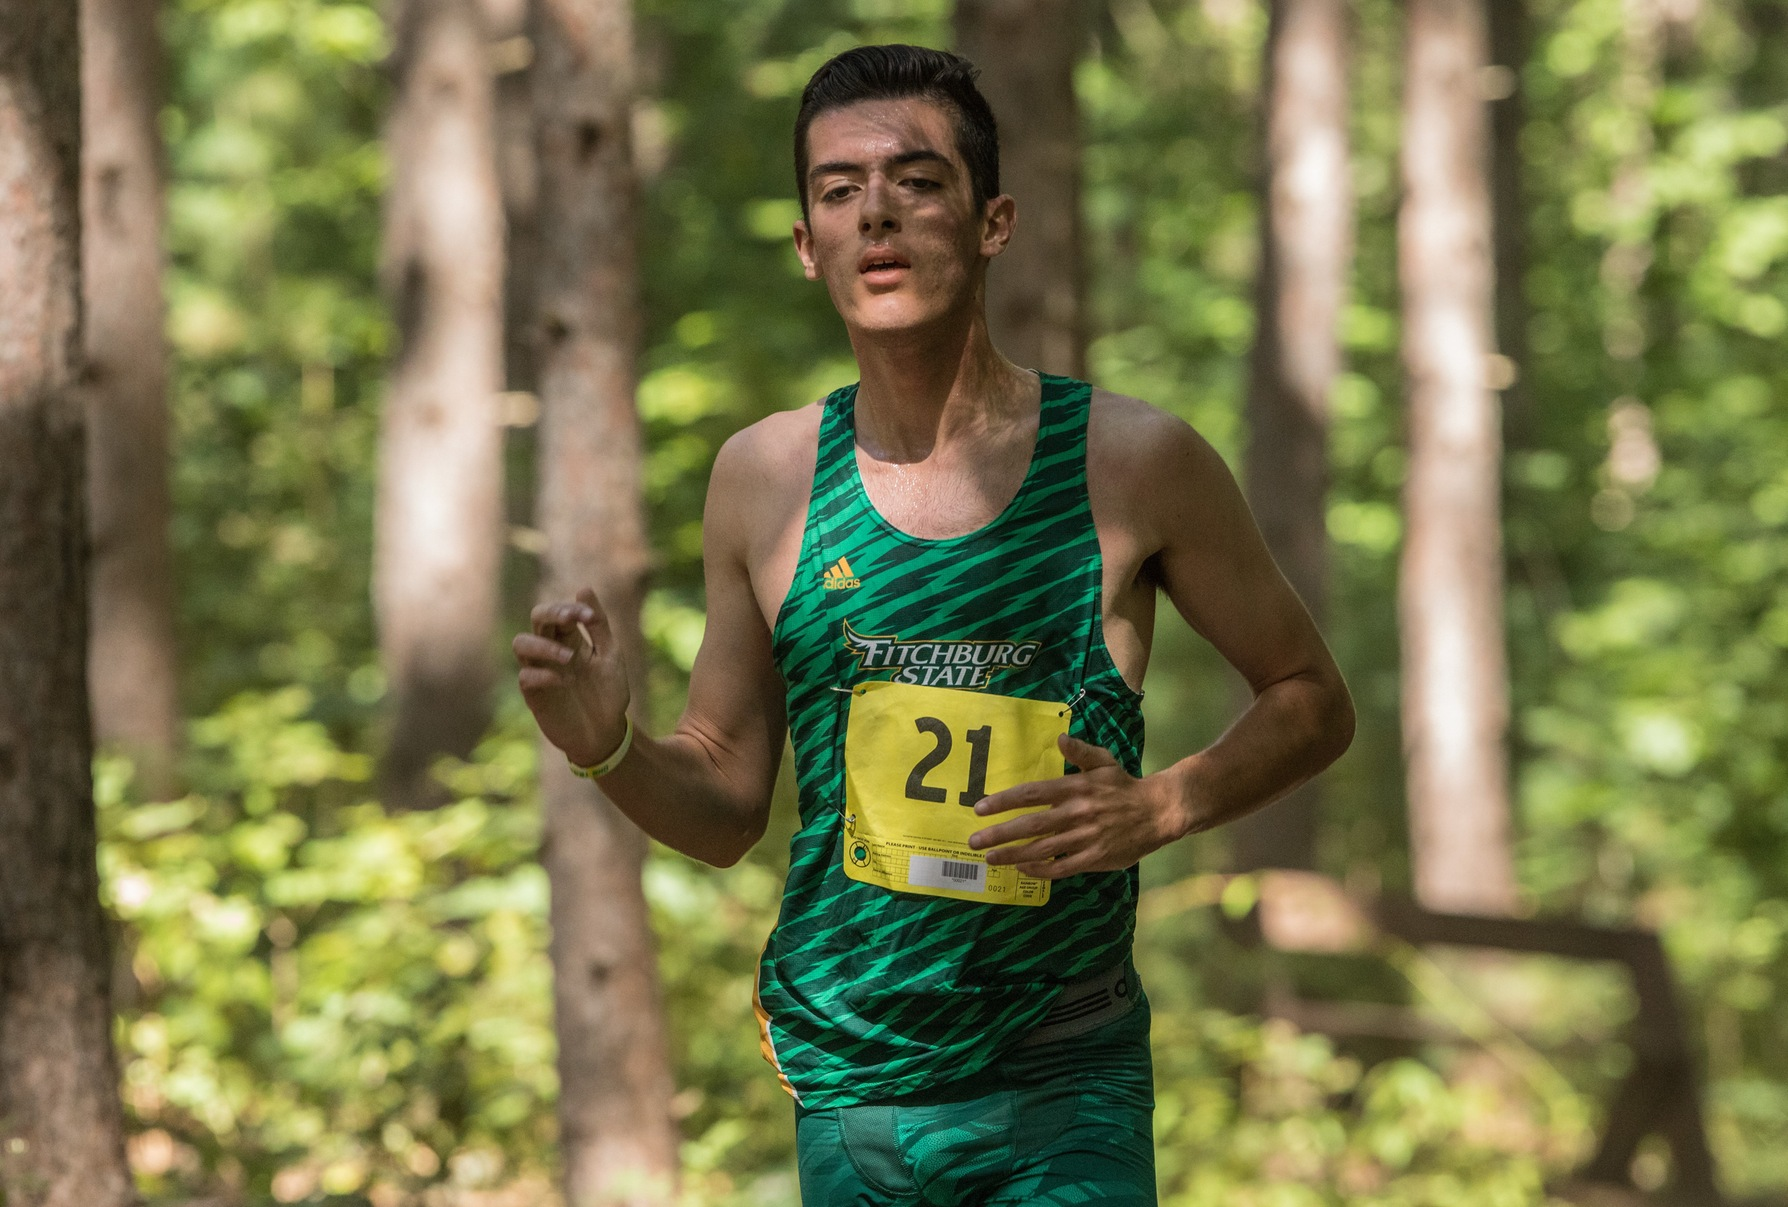 Fitchburg State Hosts Annual Jim Sheehan Memorial Invite